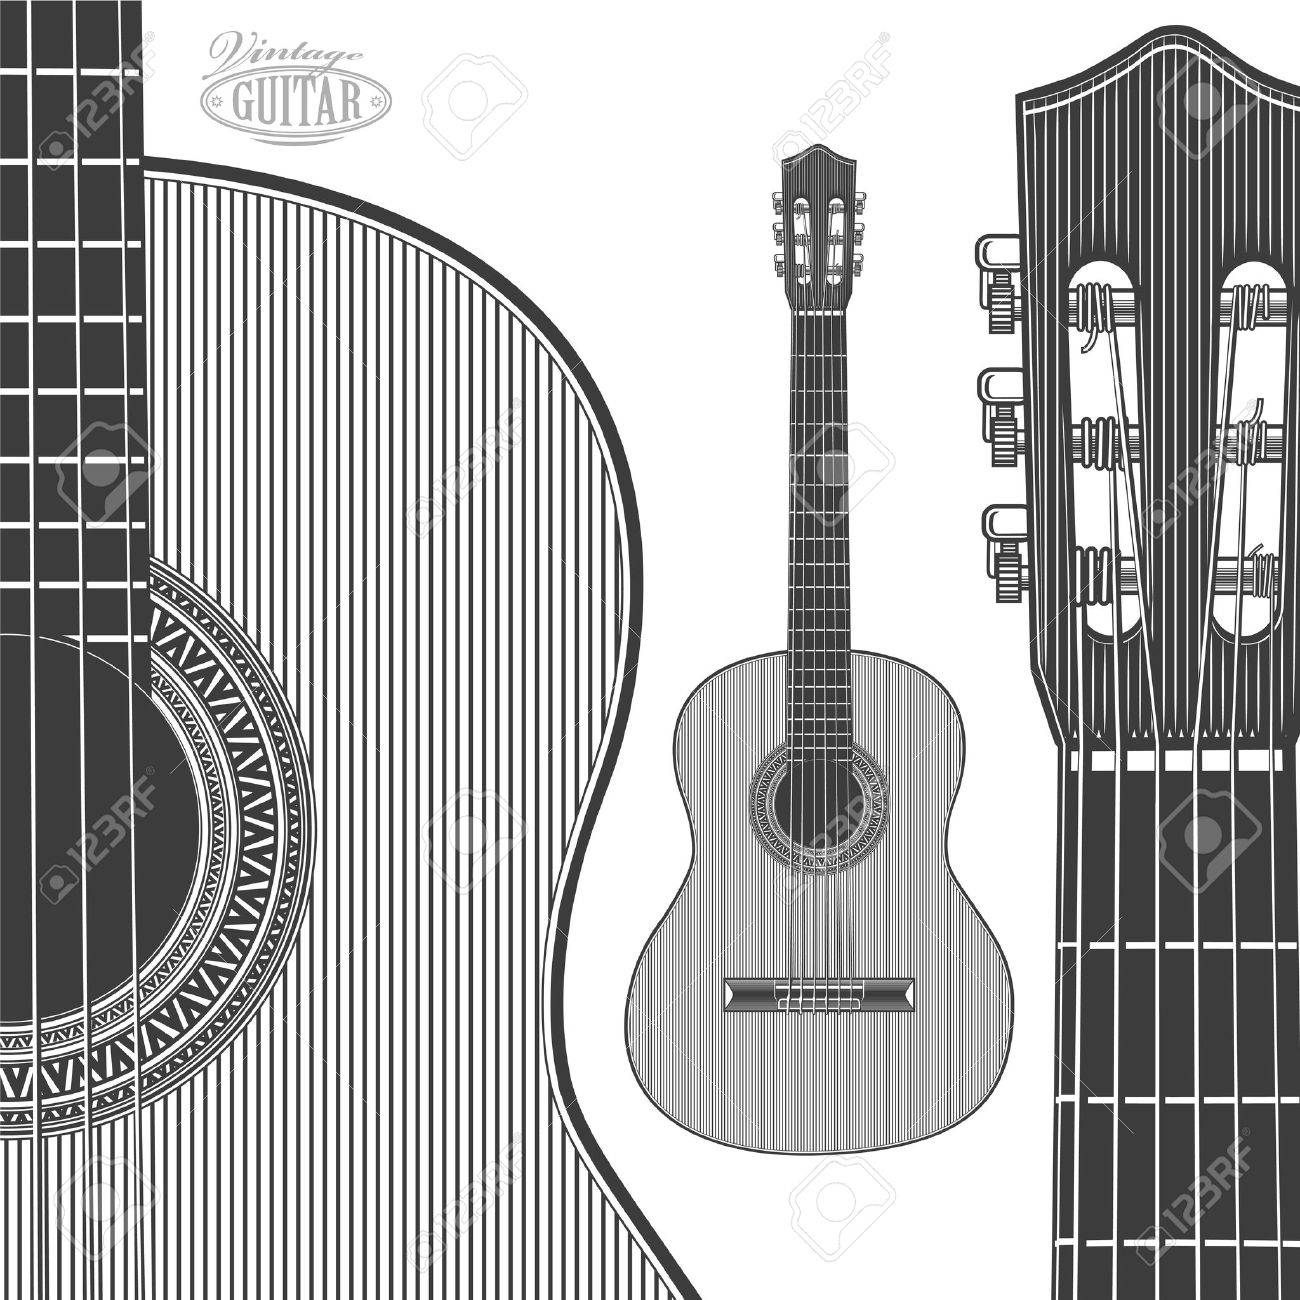 Guitar In Engraving Style On Transparent Background Royalty Free